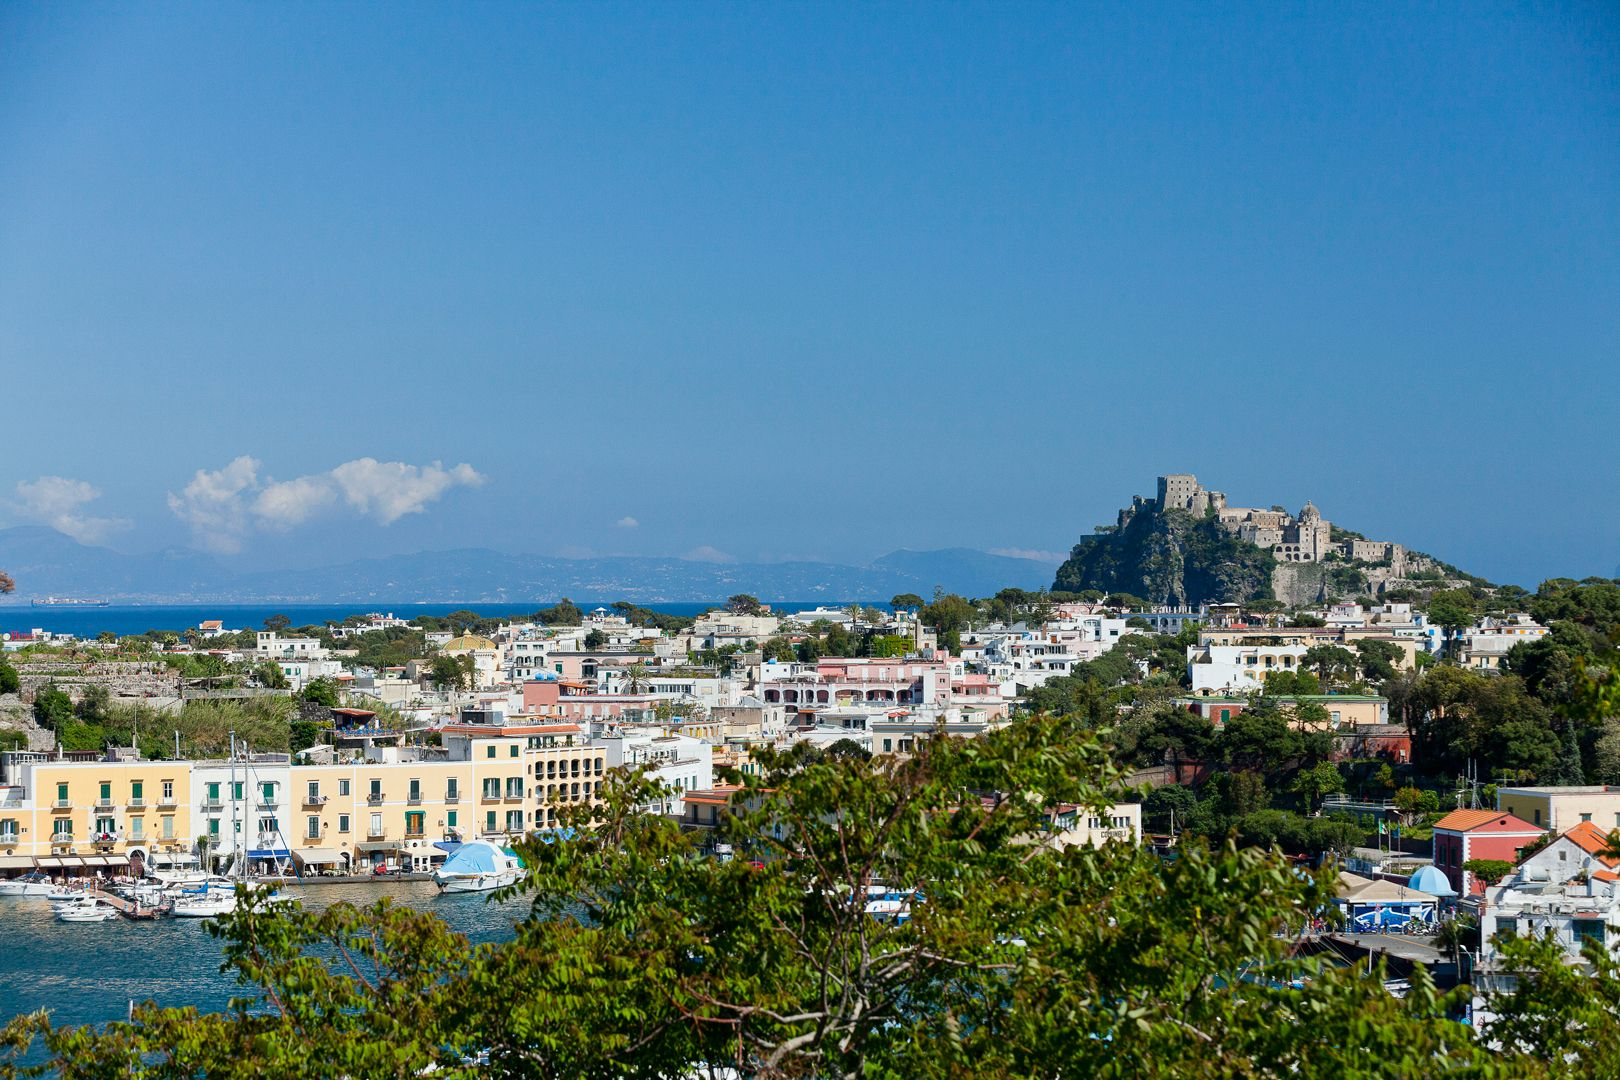 Hotel Terme Central Park - Isola d'Ischia